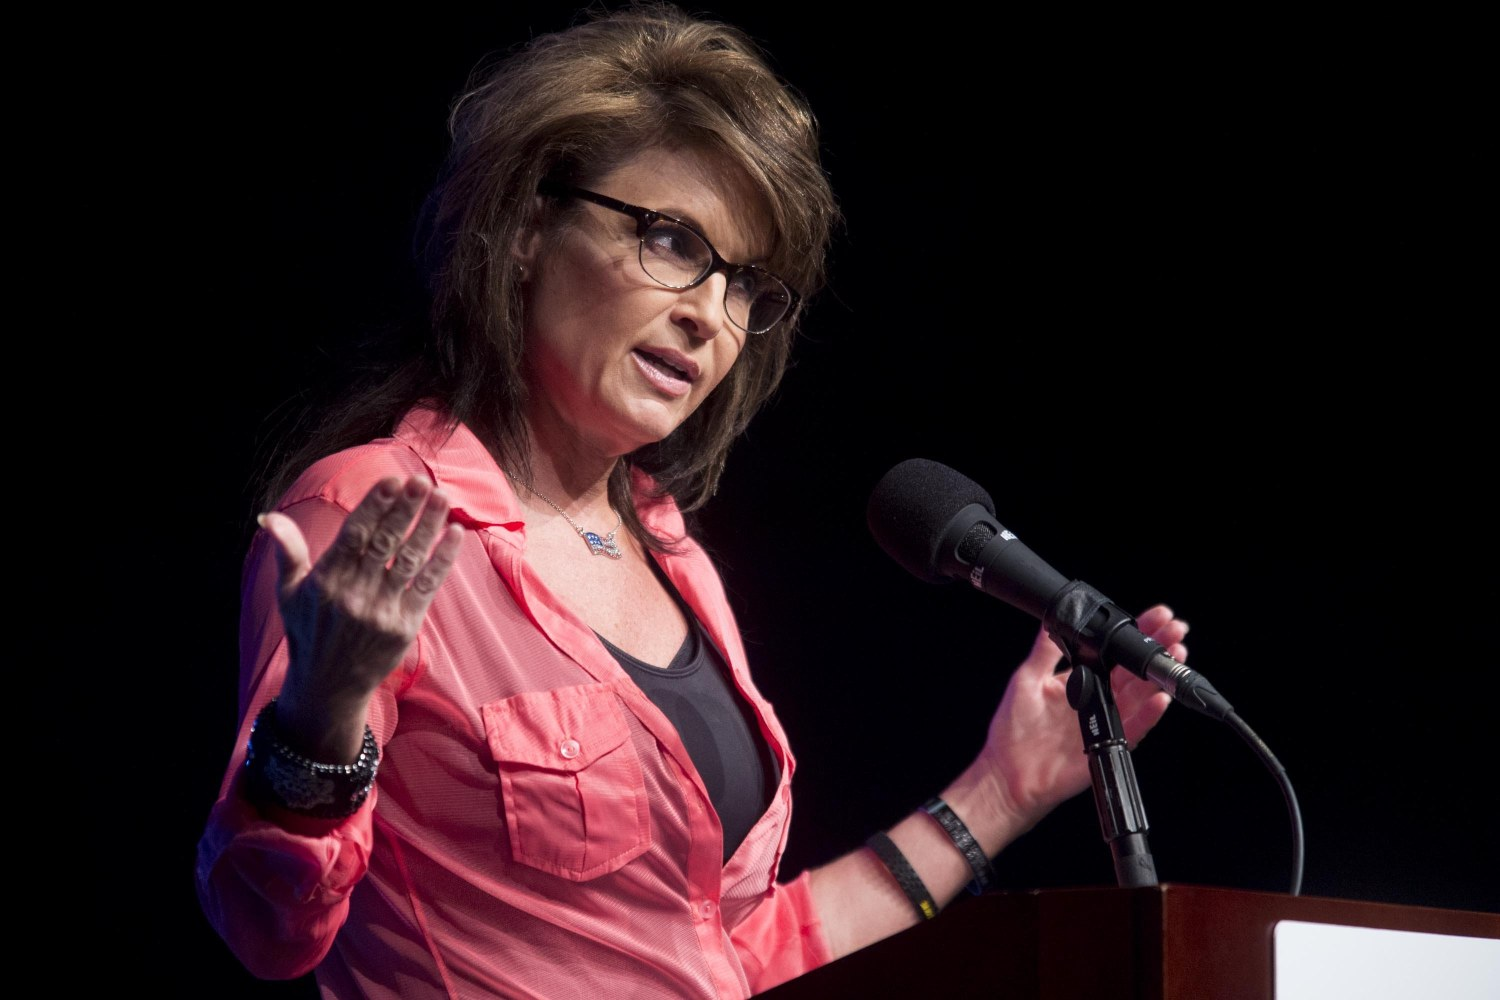 Sarah Palin Expresses Interest In Trump Administration Job